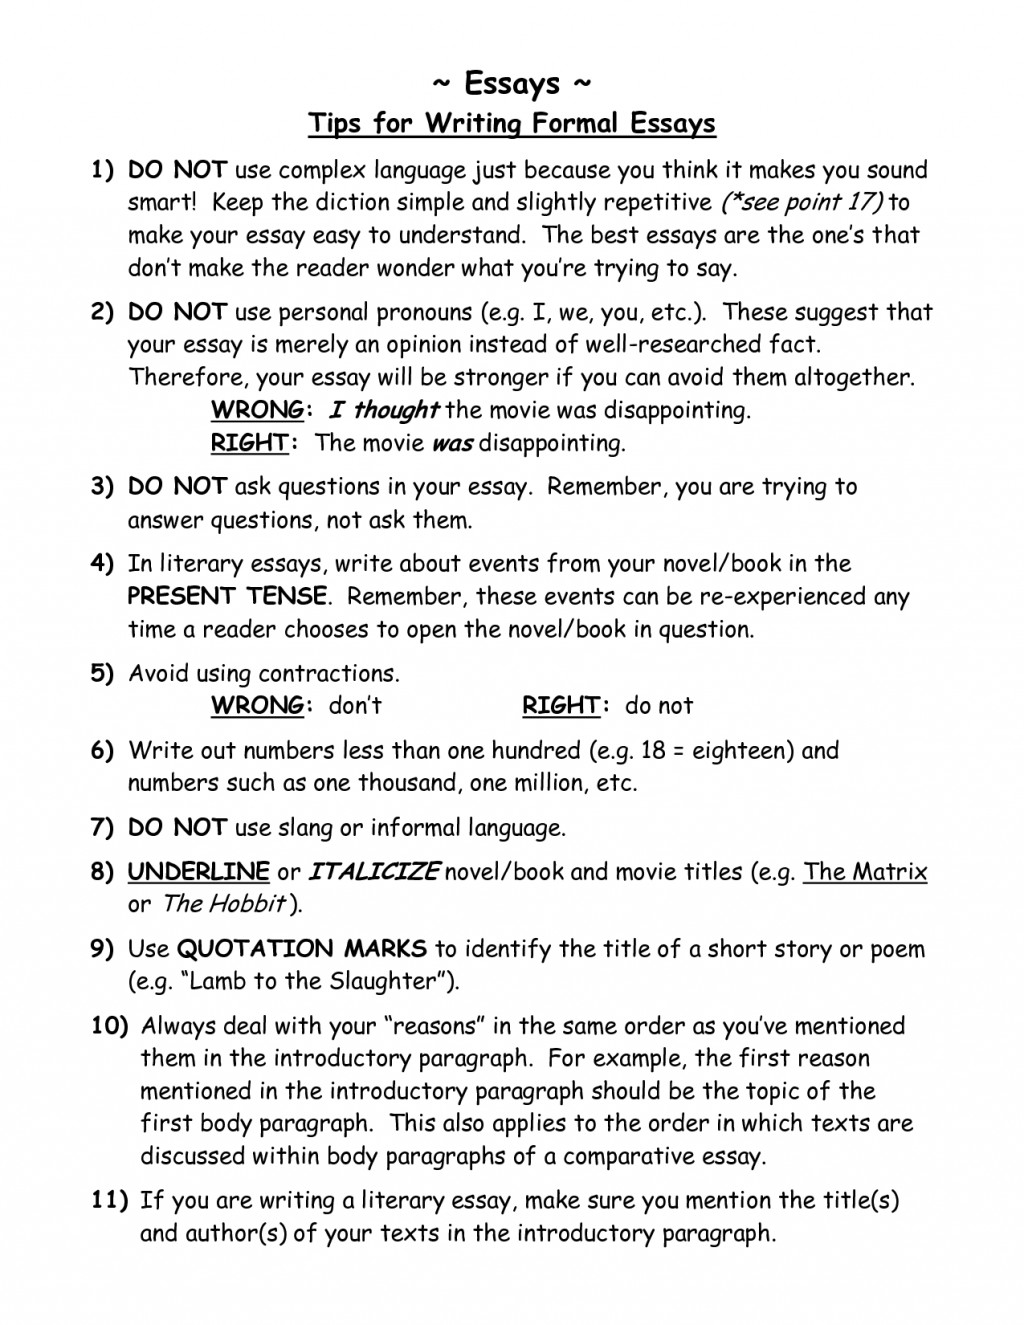 003 How To Write An Effective Essay Example Tips On Writing Essays Goal Blockety Co English Ibcmd Ppt Course Pdf Communication Samples For Ielts In Hindi Staggering A Good Academic Upsc Conclusion Large